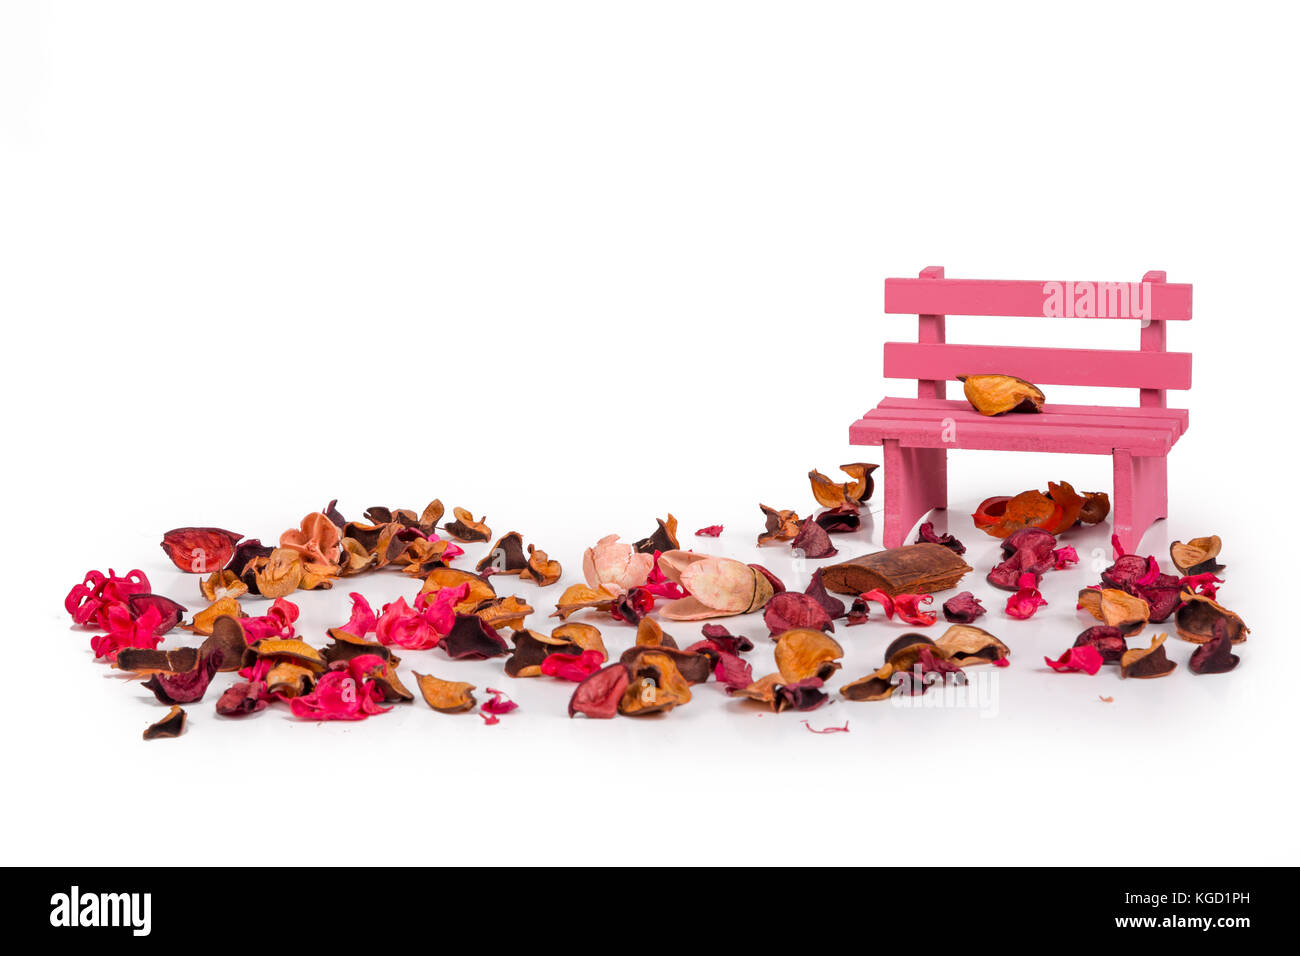 Close up detailed view of pink bench, dried flowers and leaves around with romantic concept, isolated on white background. - Stock Image